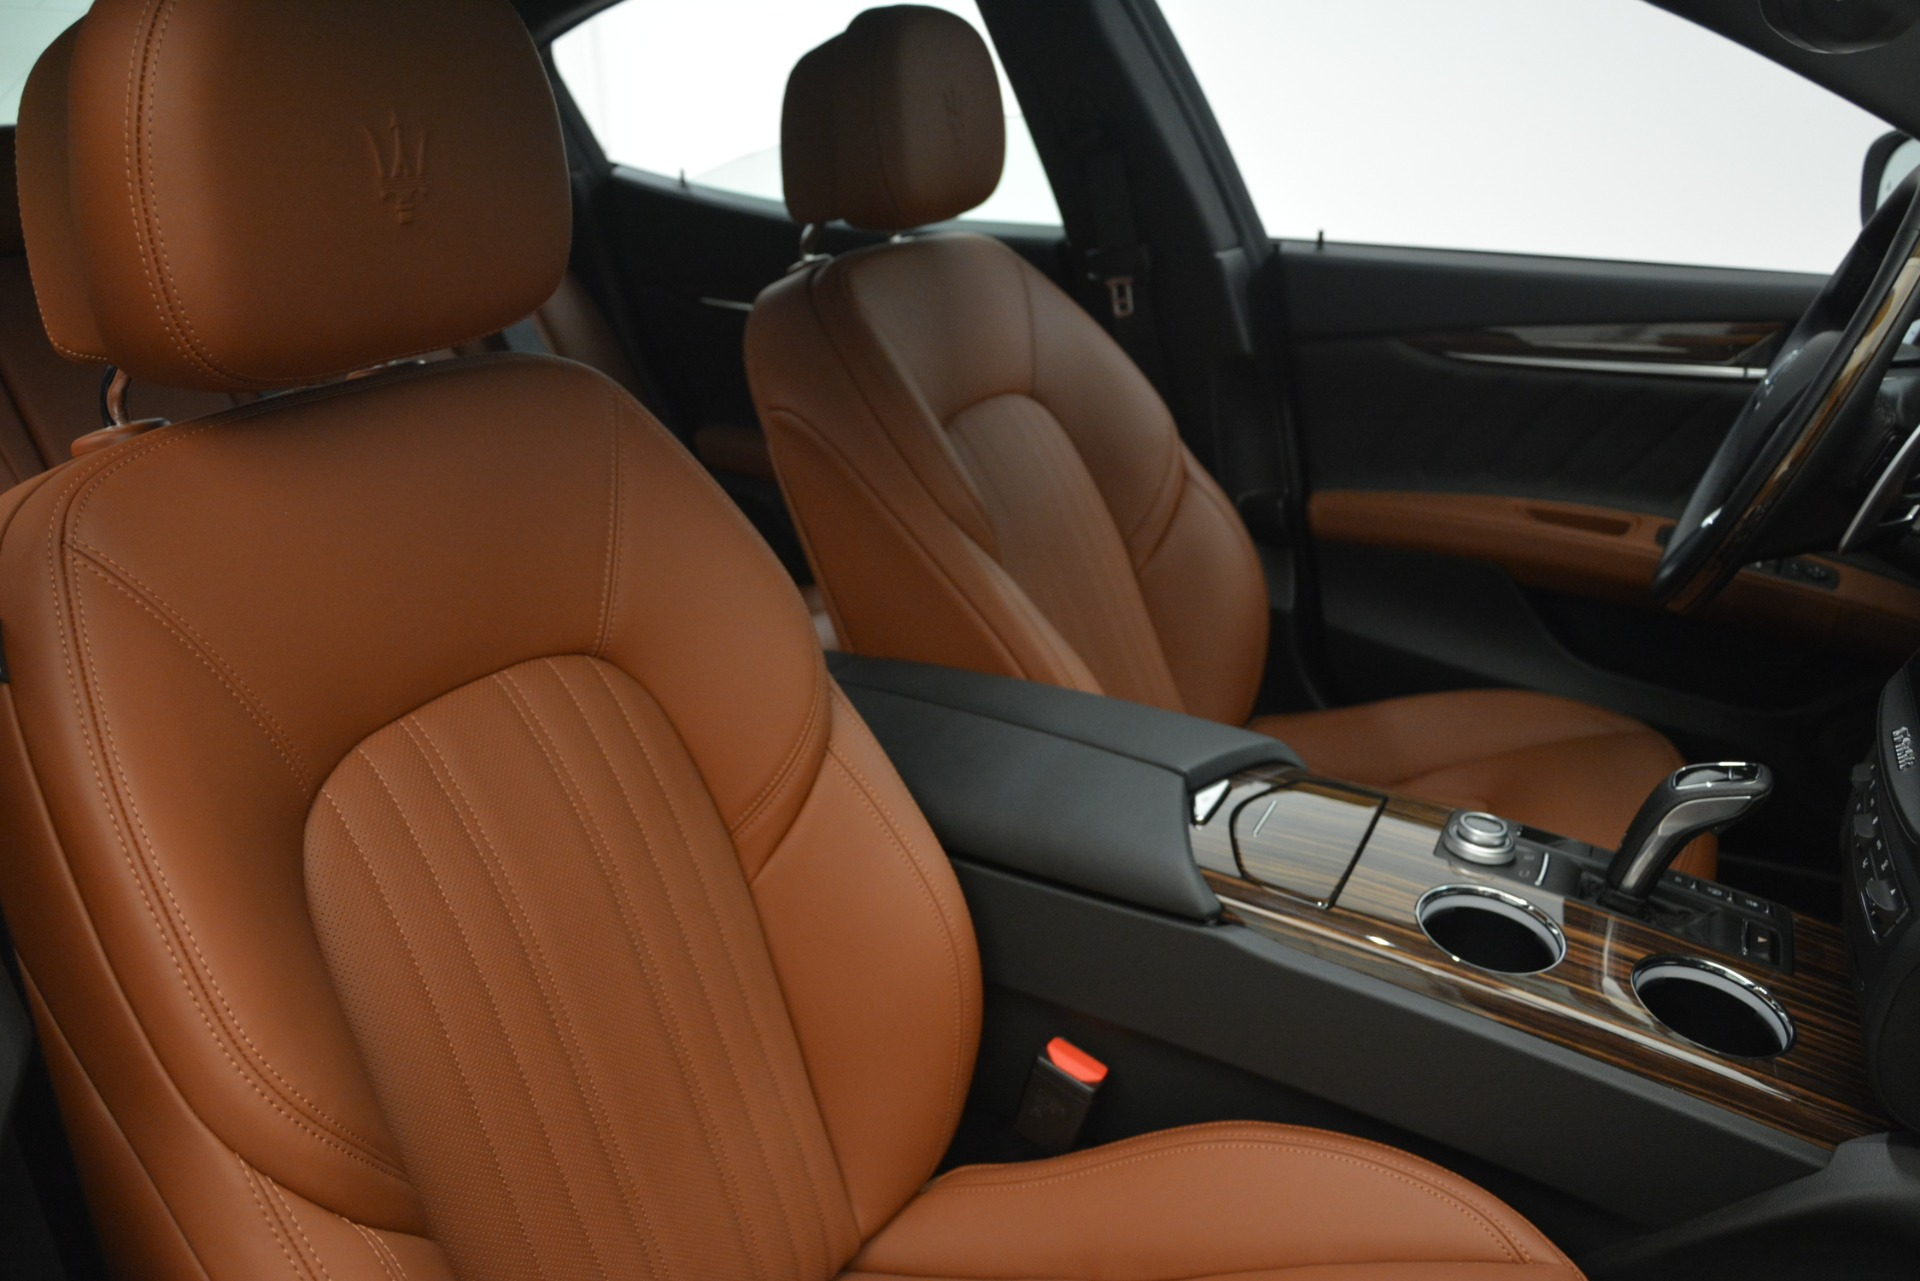 New 2019 Maserati Ghibli S Q4 GranLusso For Sale In Greenwich, CT. Alfa Romeo of Greenwich, M2223 2590_p22